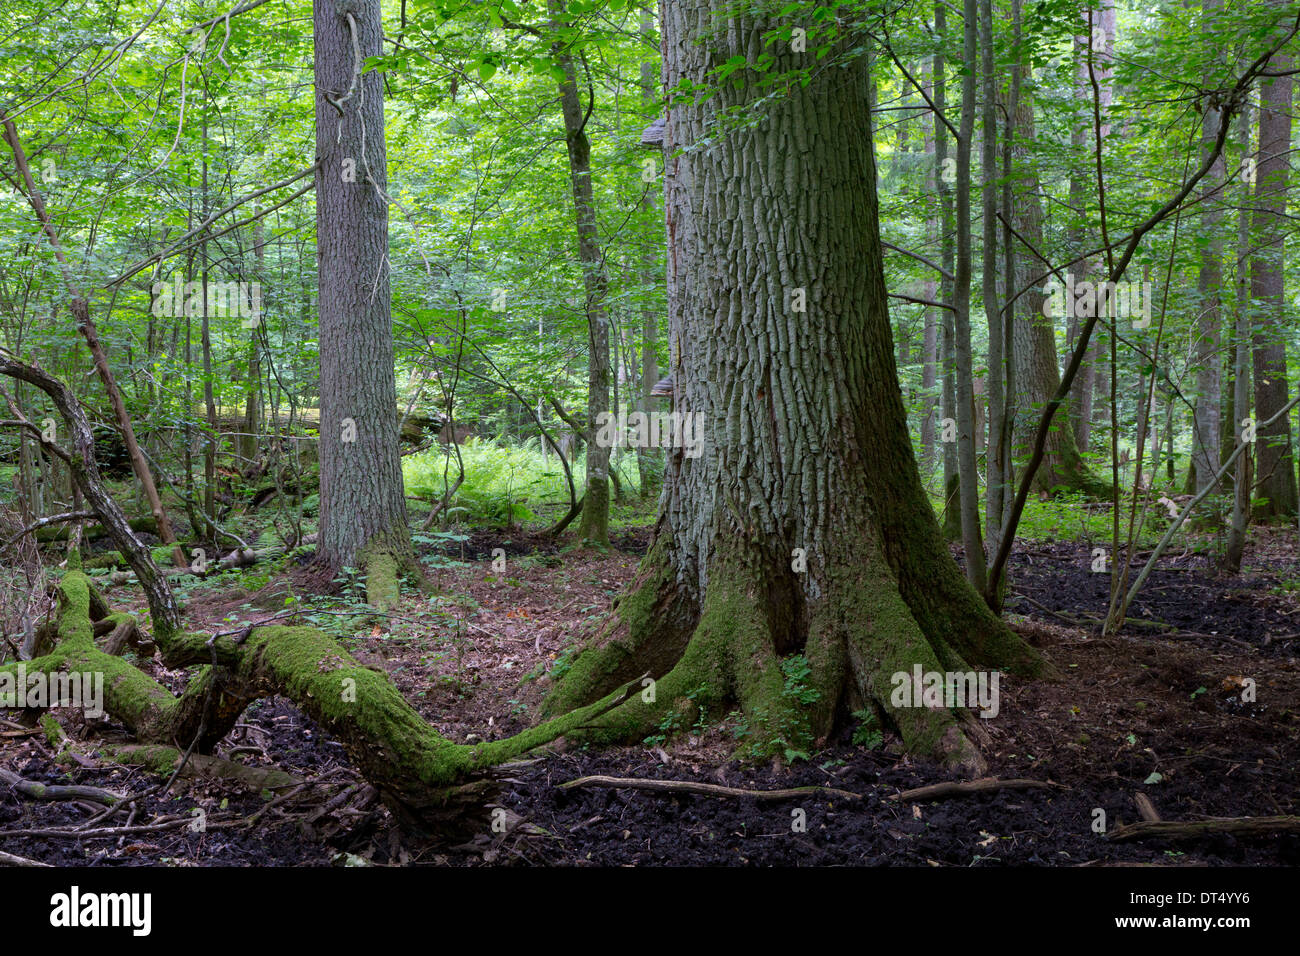 Primeval deciduous stand of Bialowieza Forest in summer with old oak tree in foreground - Stock Image